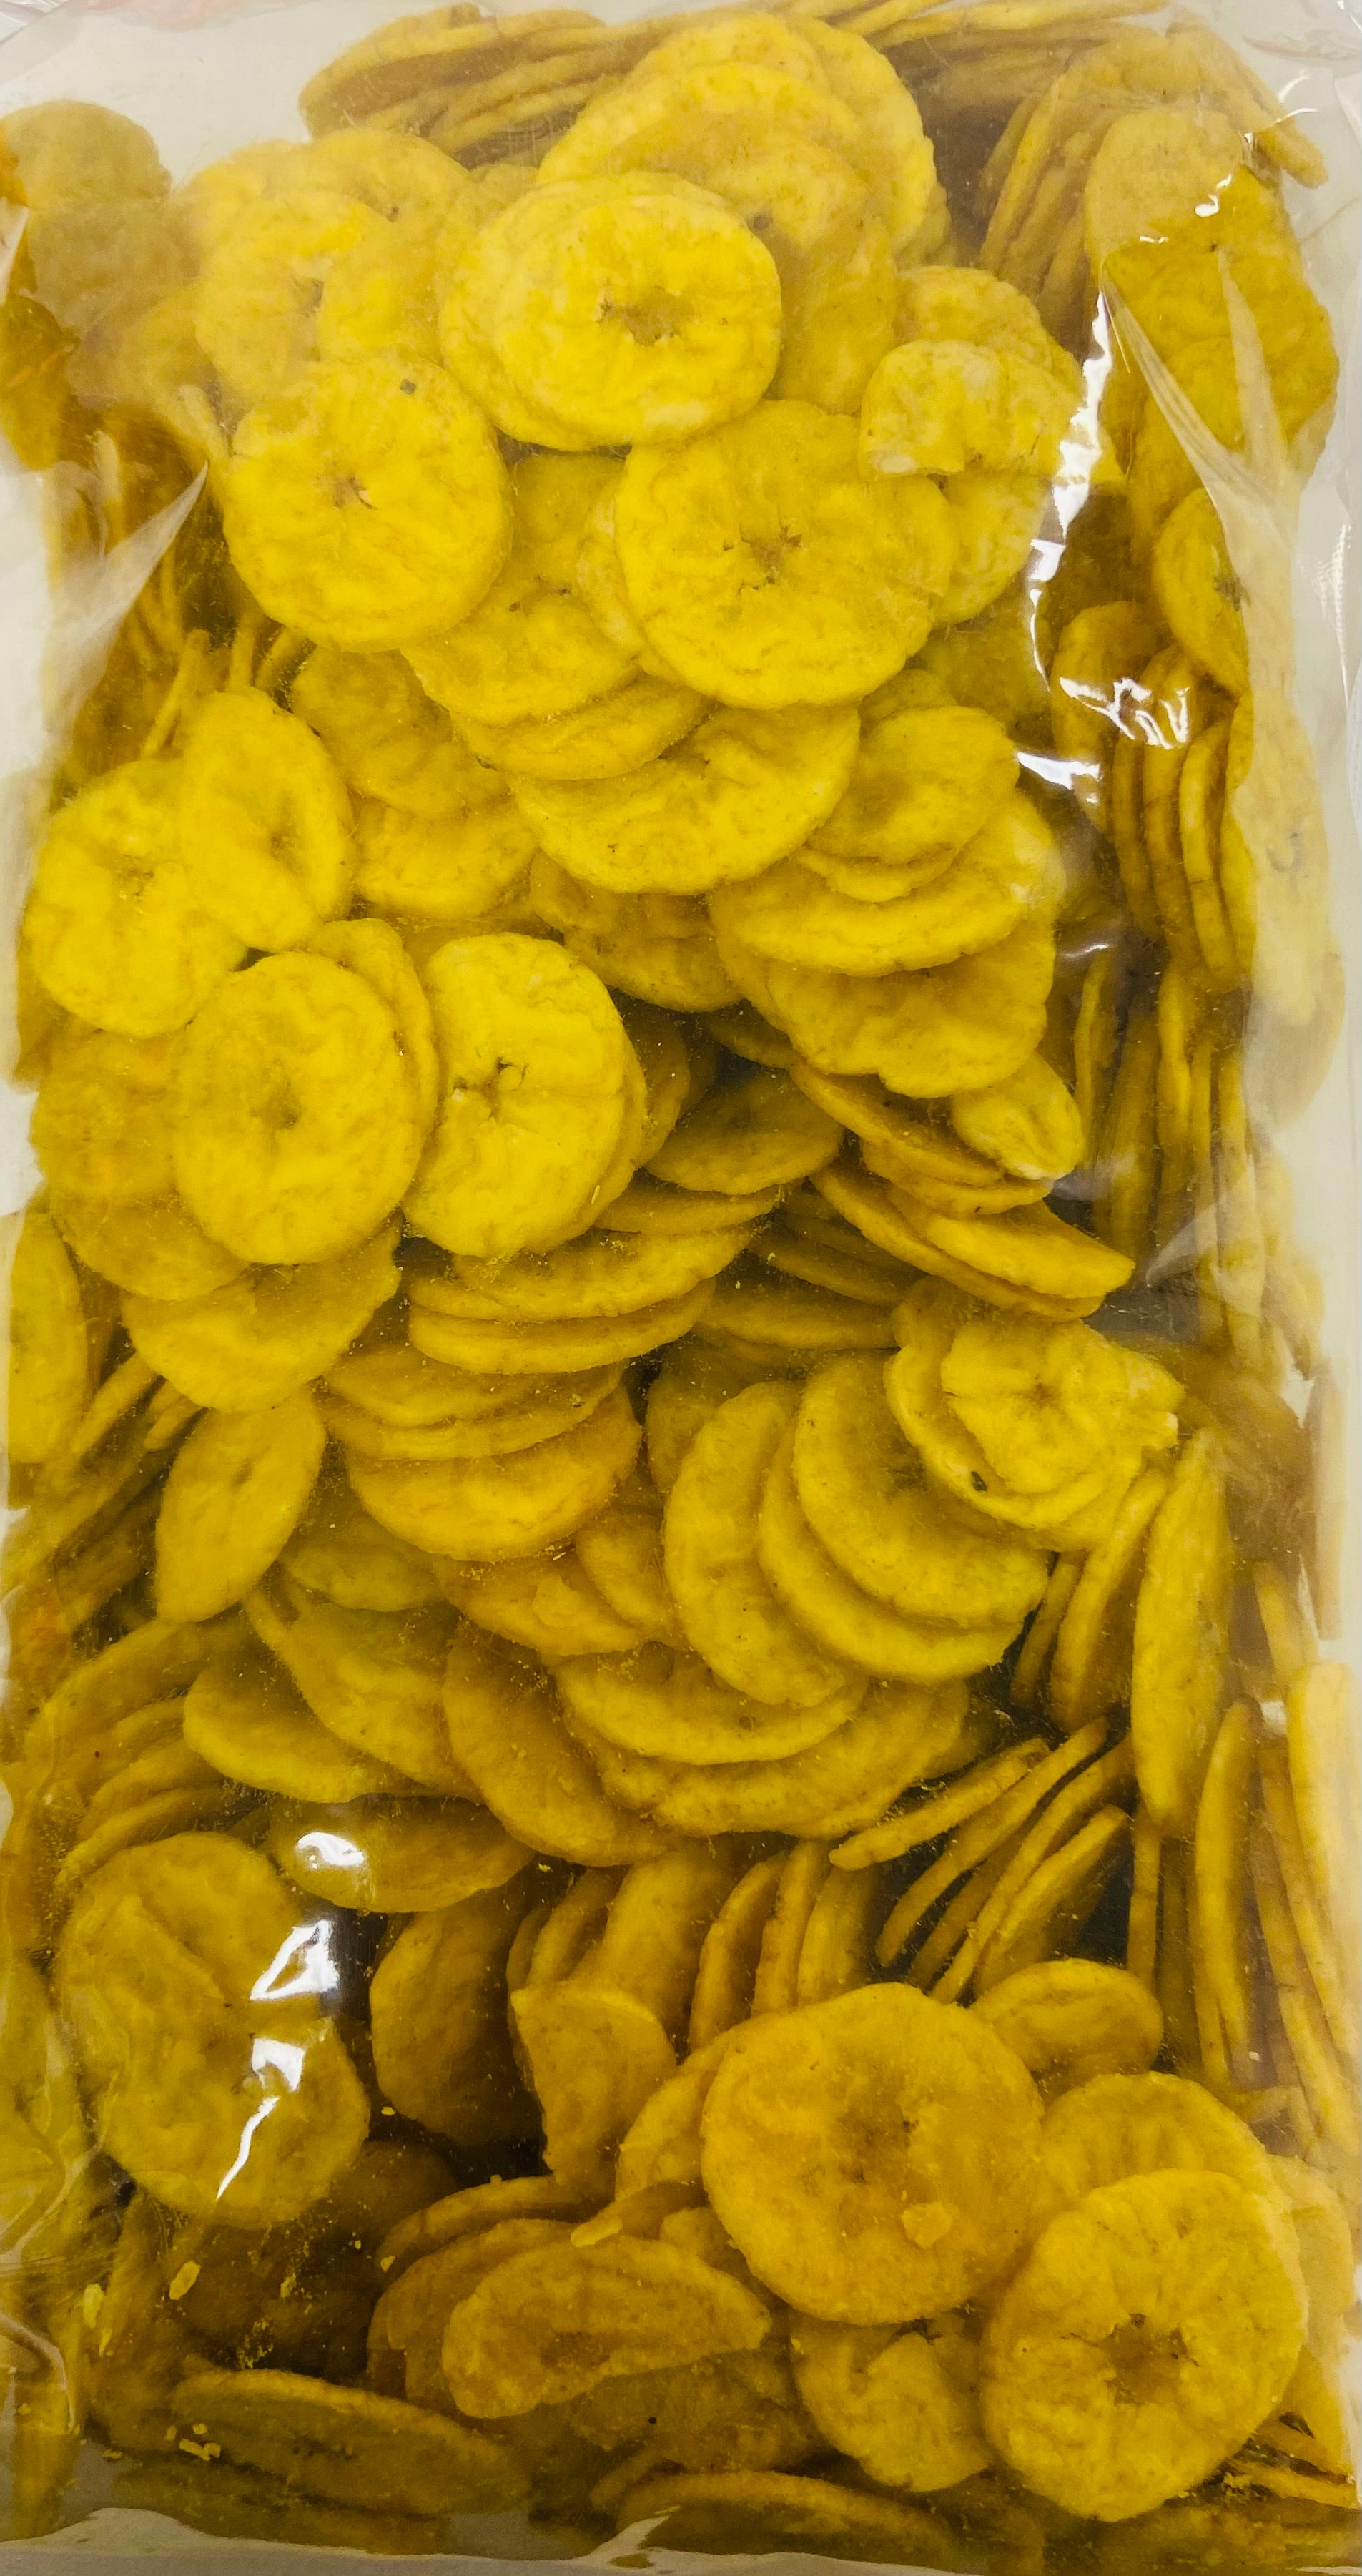 Amma's Kitchen Banana Chips (Value Pack - 2 lb)